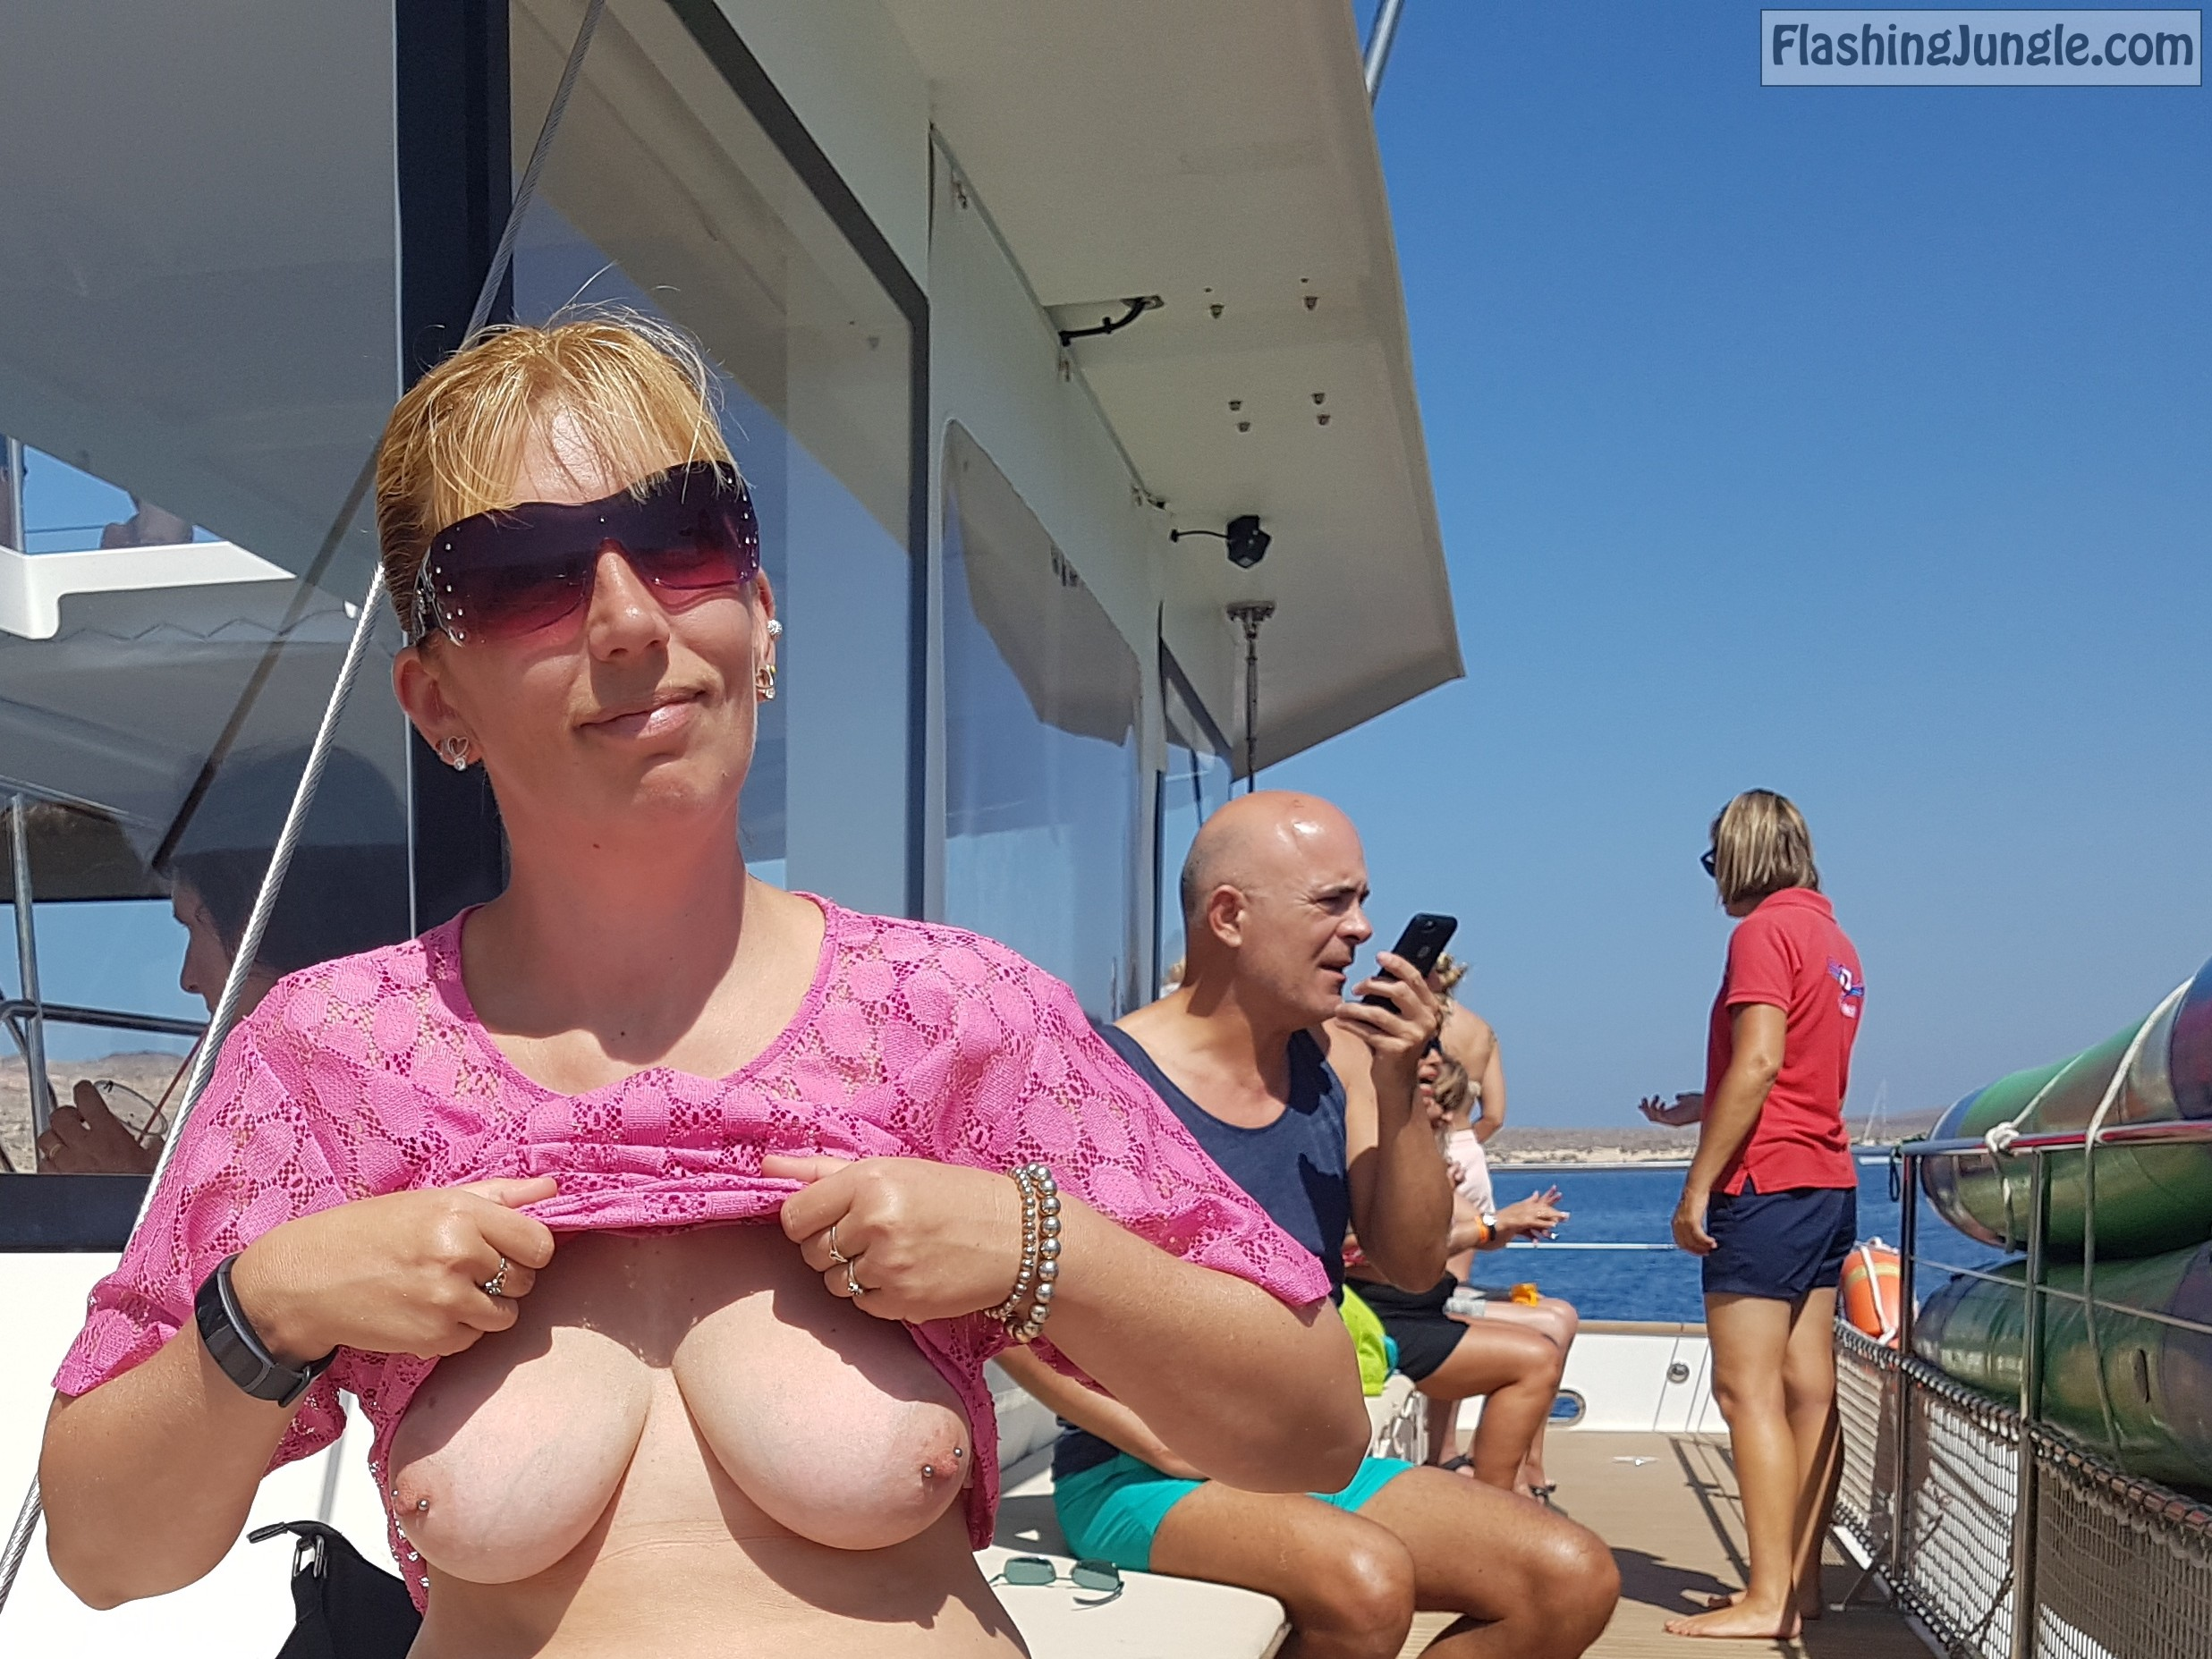 Real Nudity Public Flashing Pics MILF Flashing Pics Hotwife Pics Boobs Flash Pics